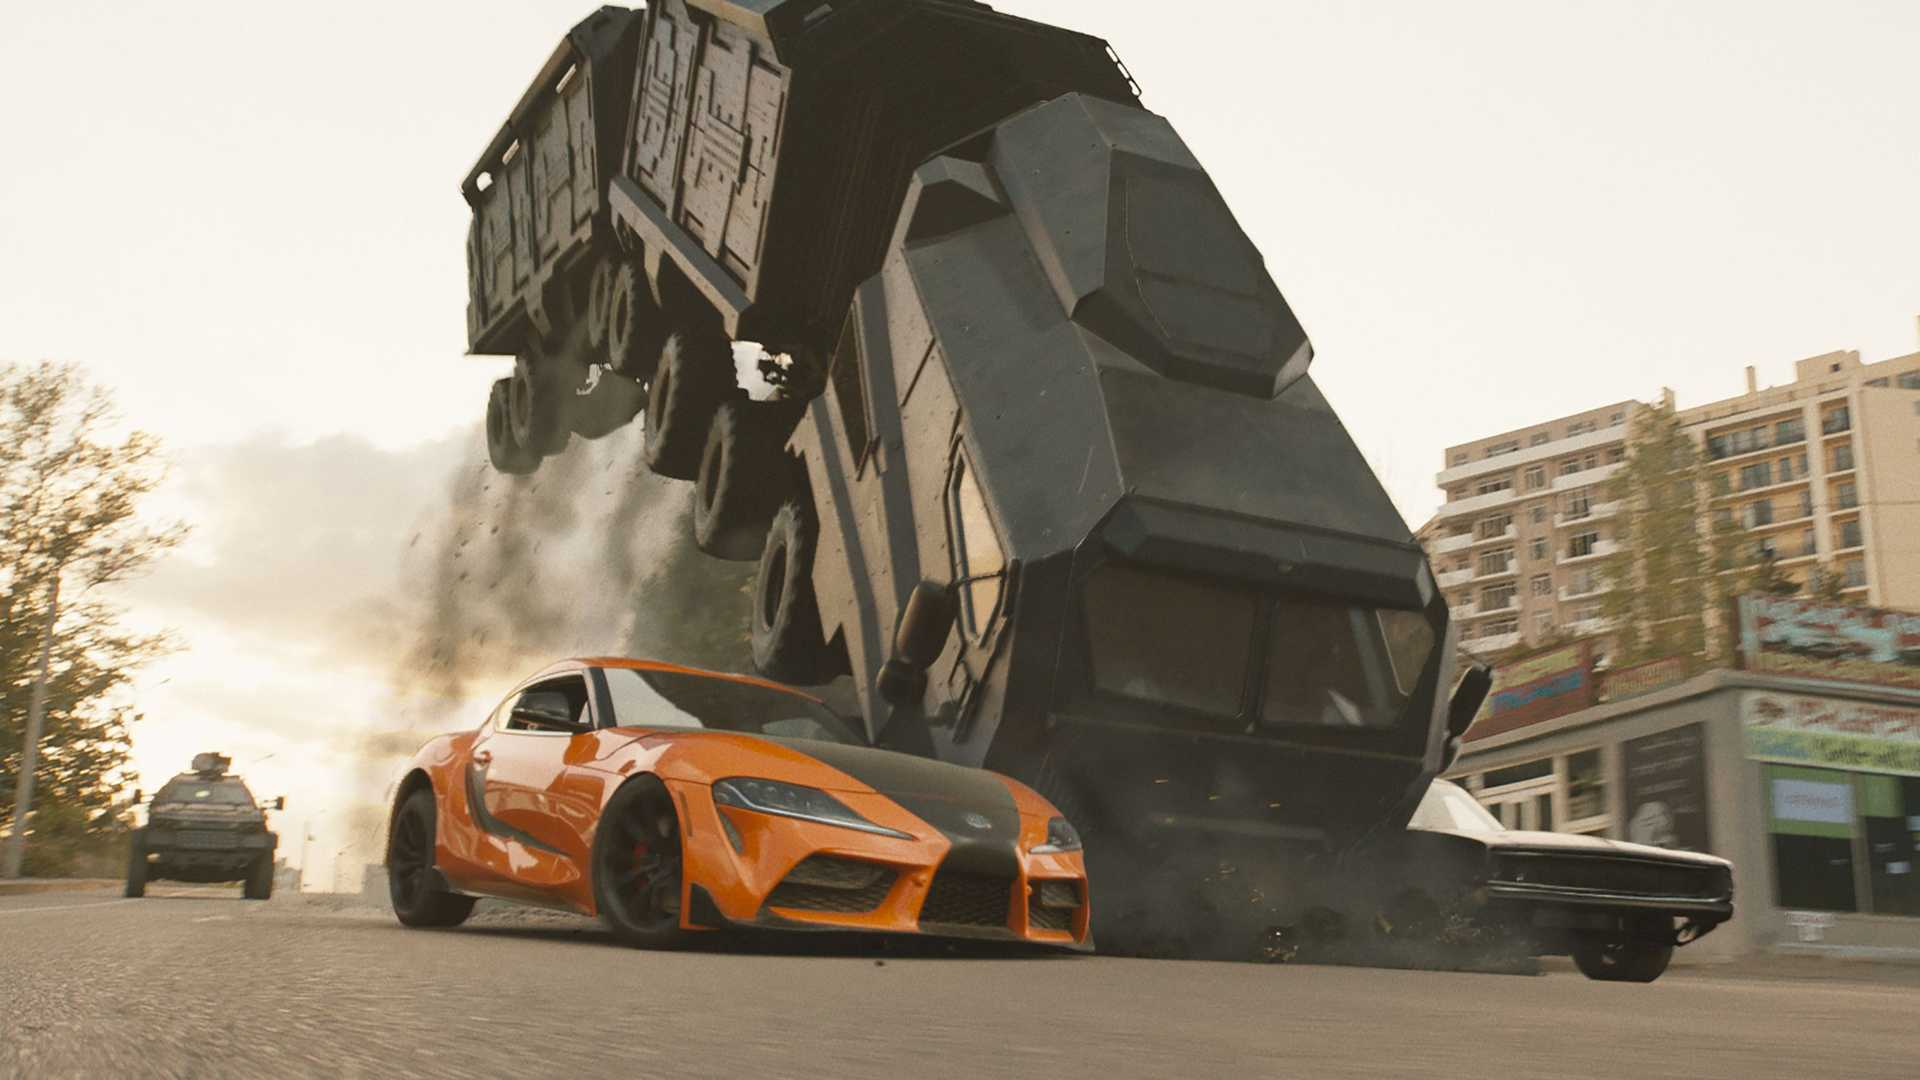 left-to-right-villains-armory-truck-han-mia-s-2020-toyota-supra-villains-the-armadillo-dom-s-1968-mid-engine-charger